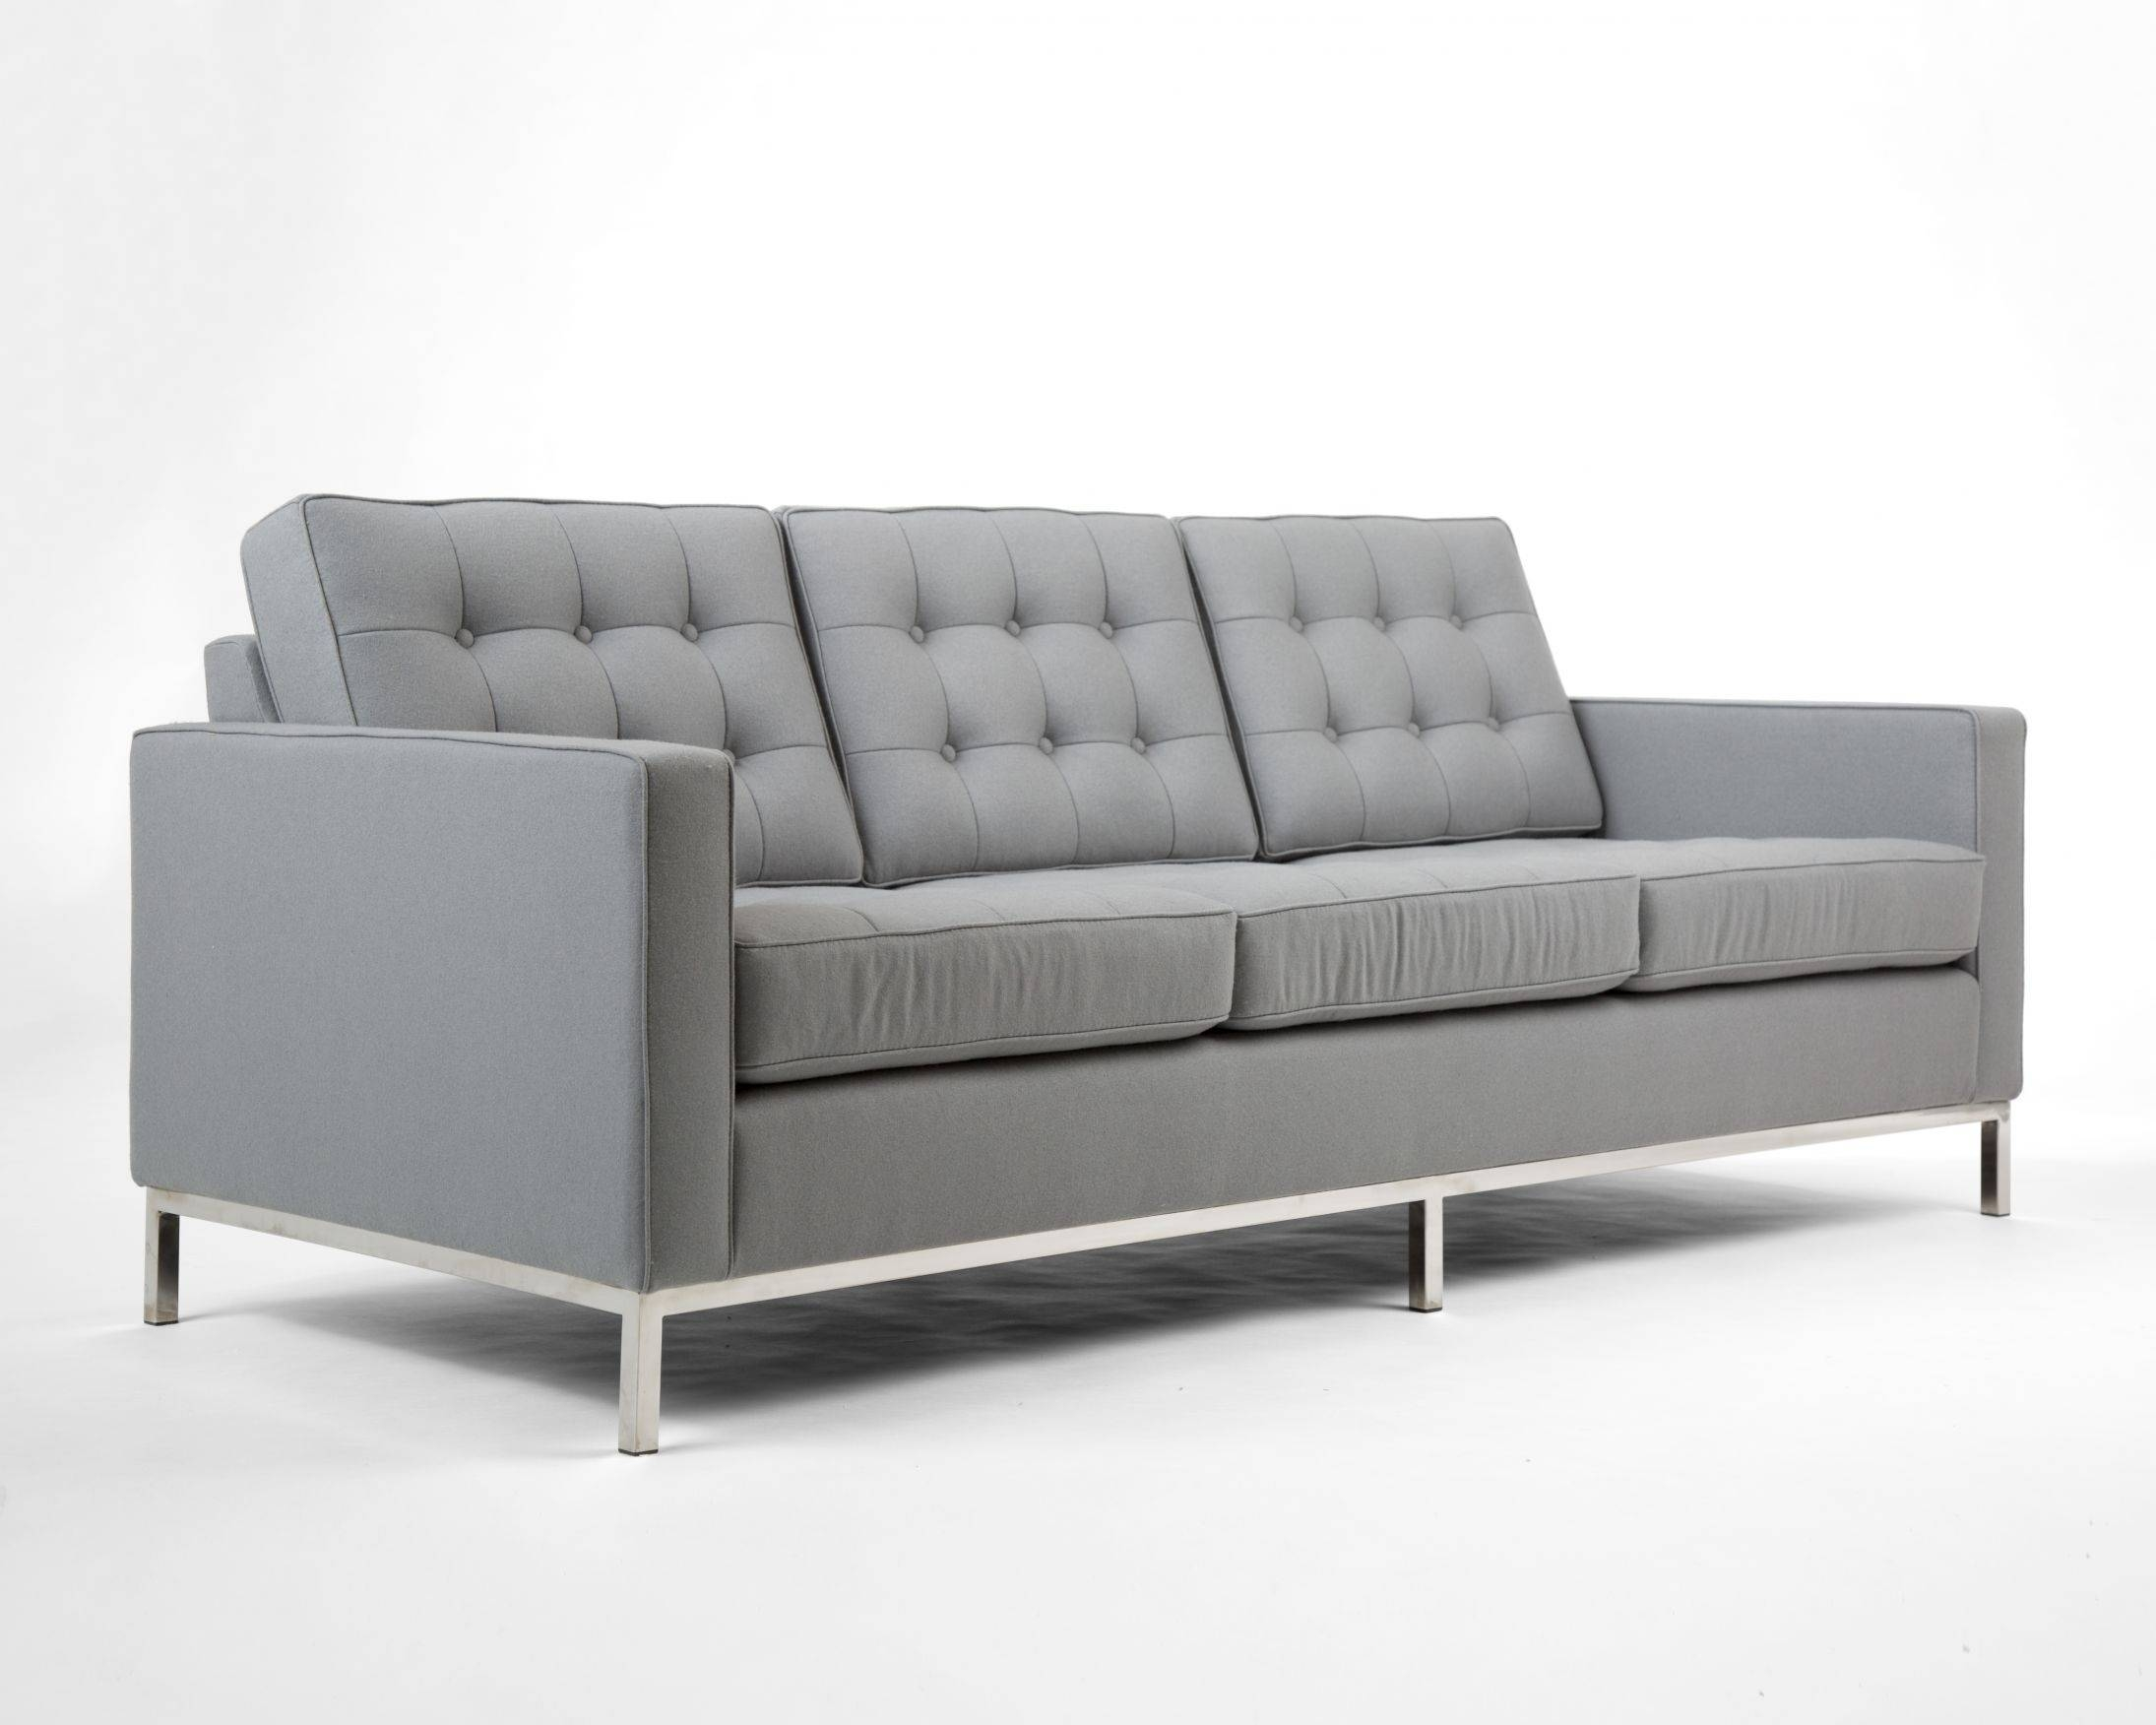 Florence Sofa | Reproduction | Mid Century Modern intended for Florence Sofas And Loveseats (Image 15 of 25)